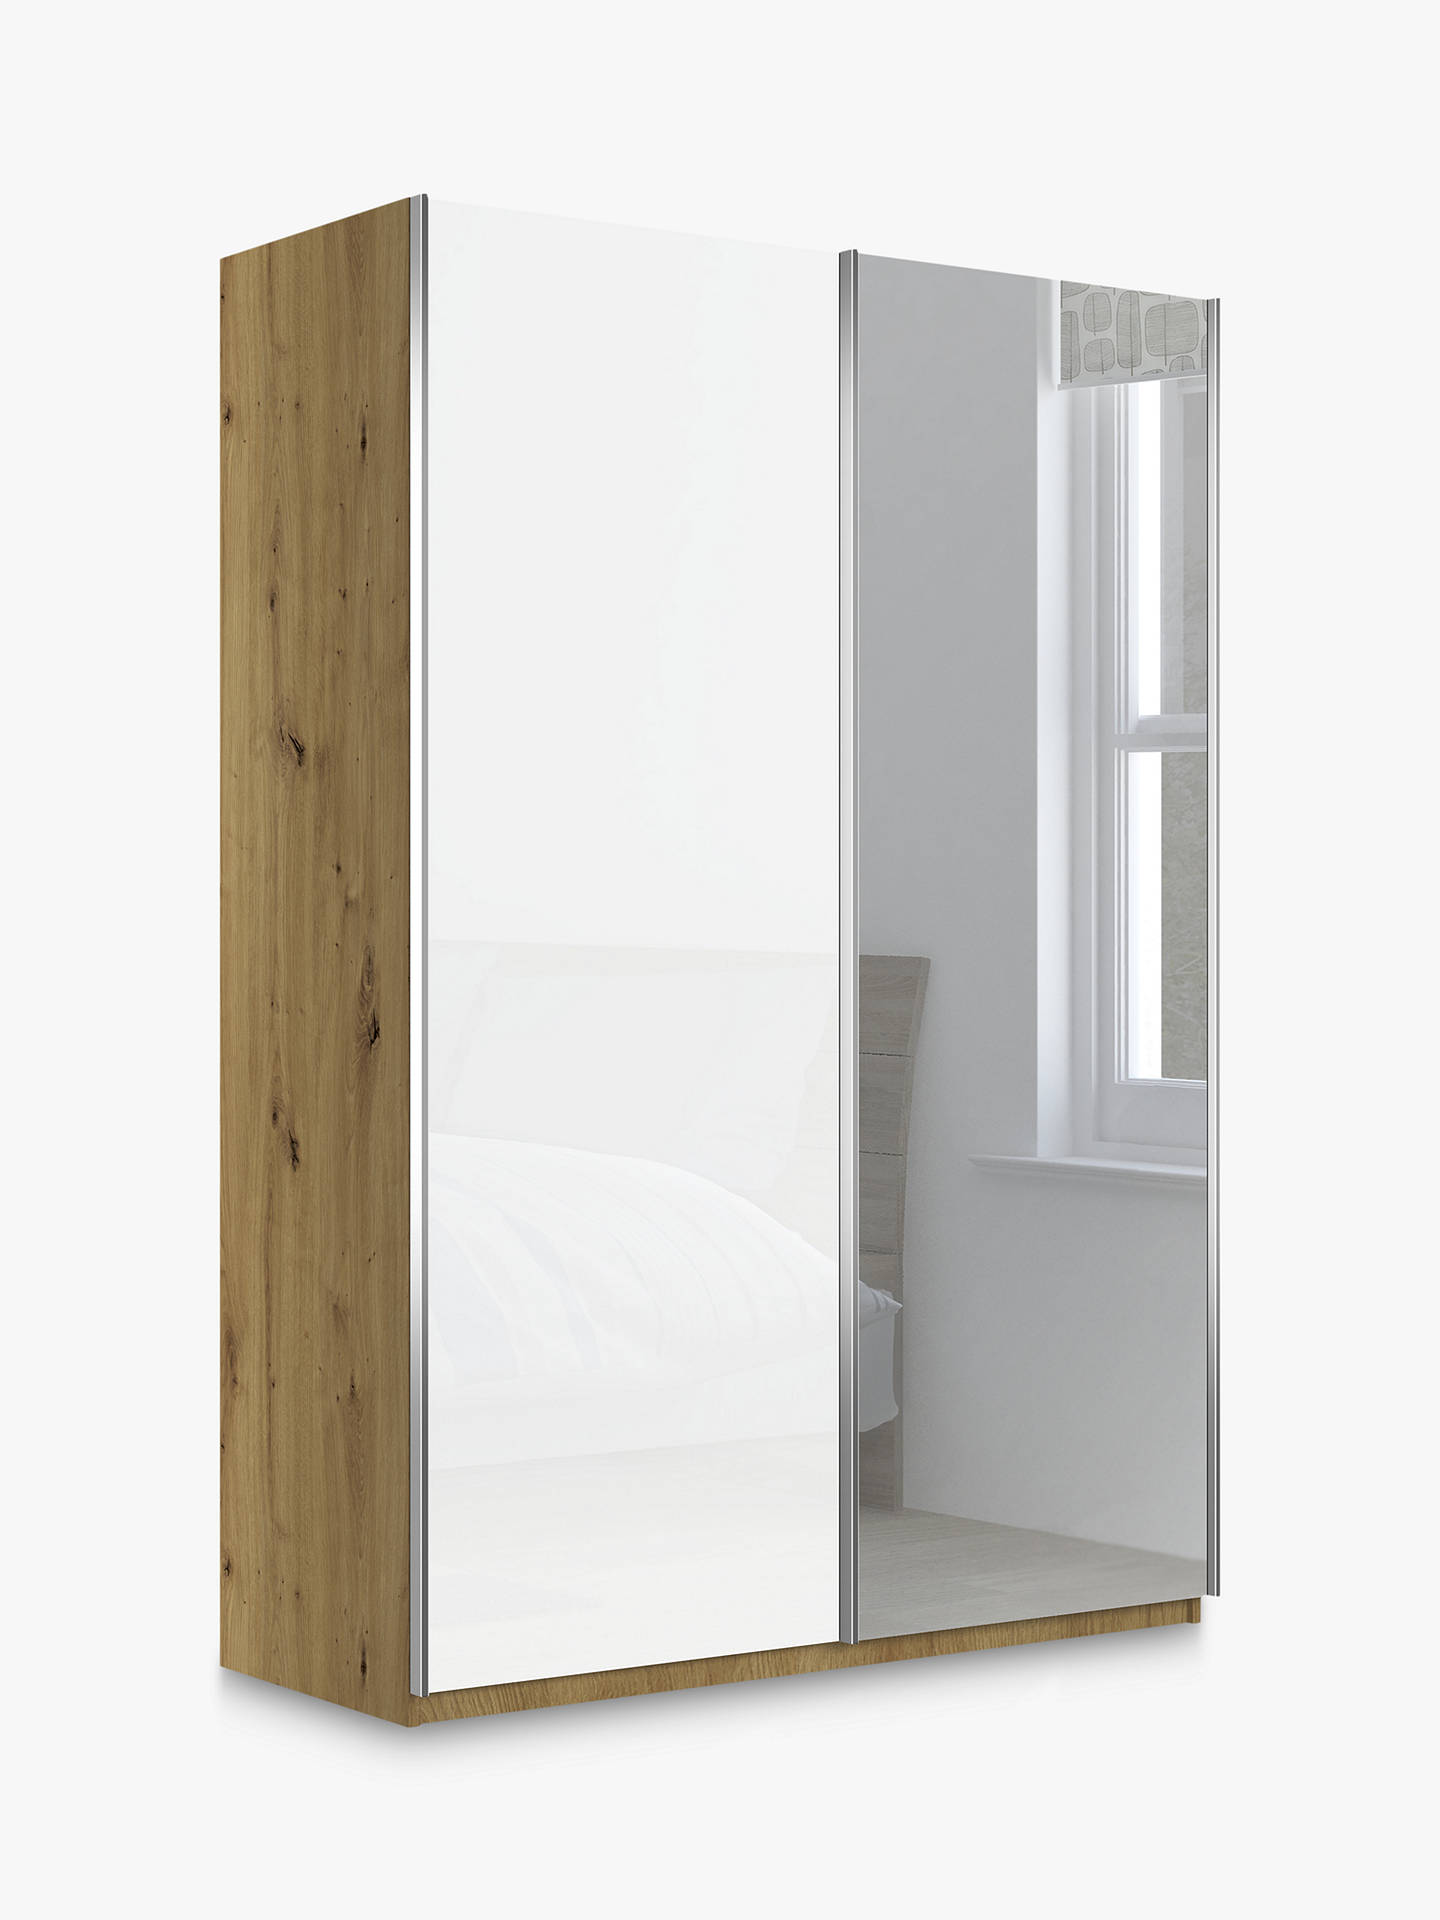 Buy John Lewis & Partners Elstra 150cm Wardrobe with White Glass and Mirrored Sliding Doors, Bianco Oak Online at johnlewis.com